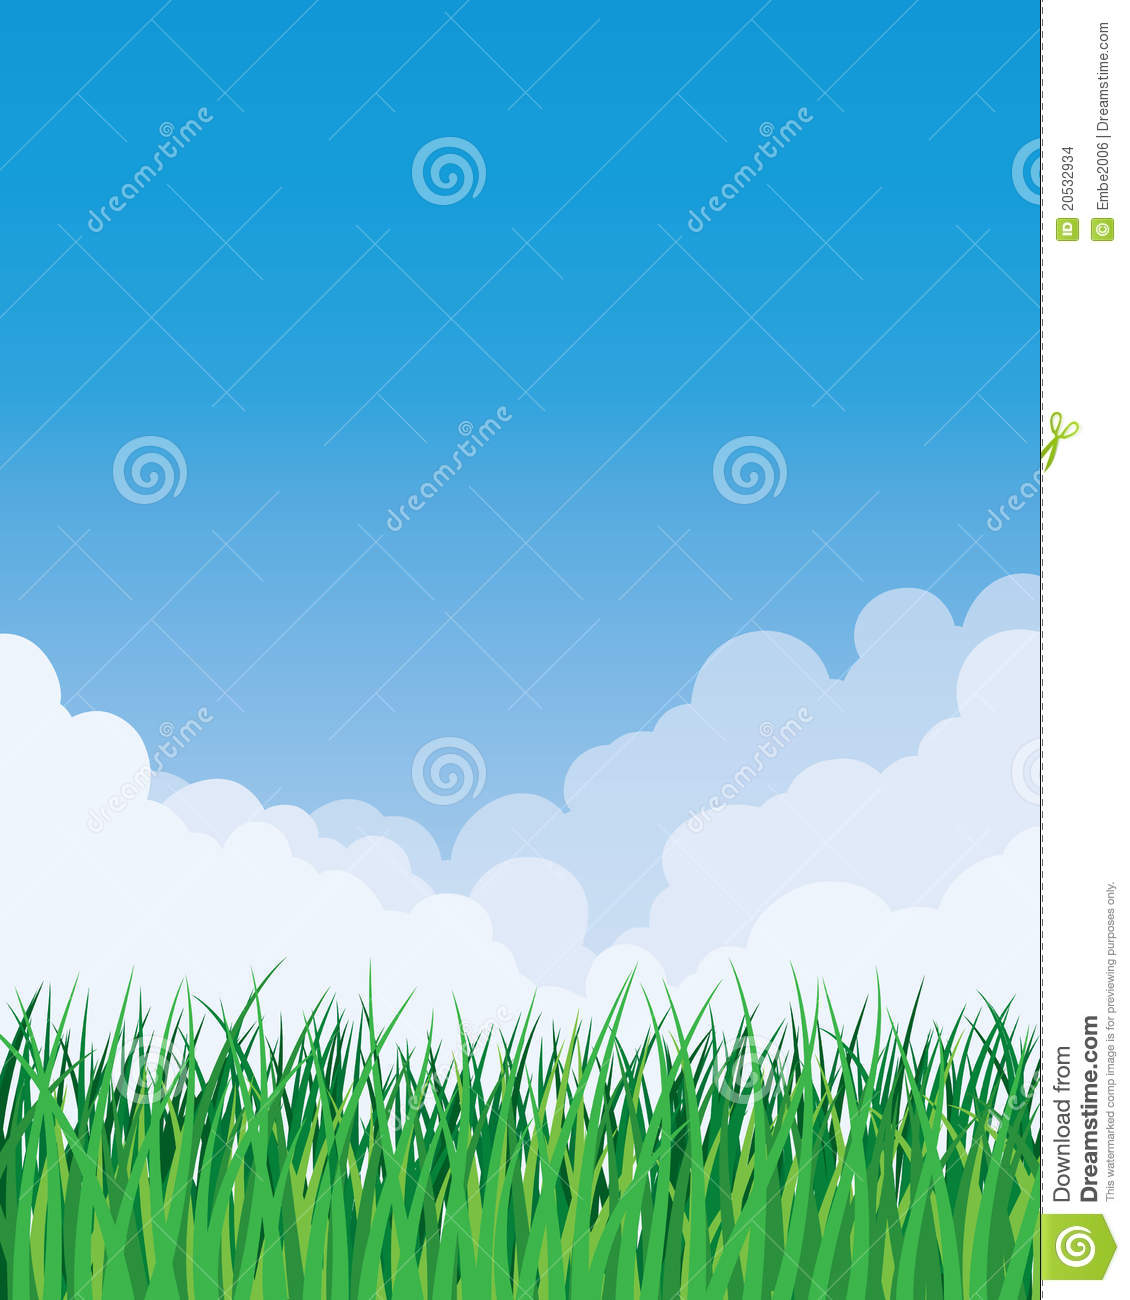 Grass And Sky Background Stock Vector Illustration Of Peaceful